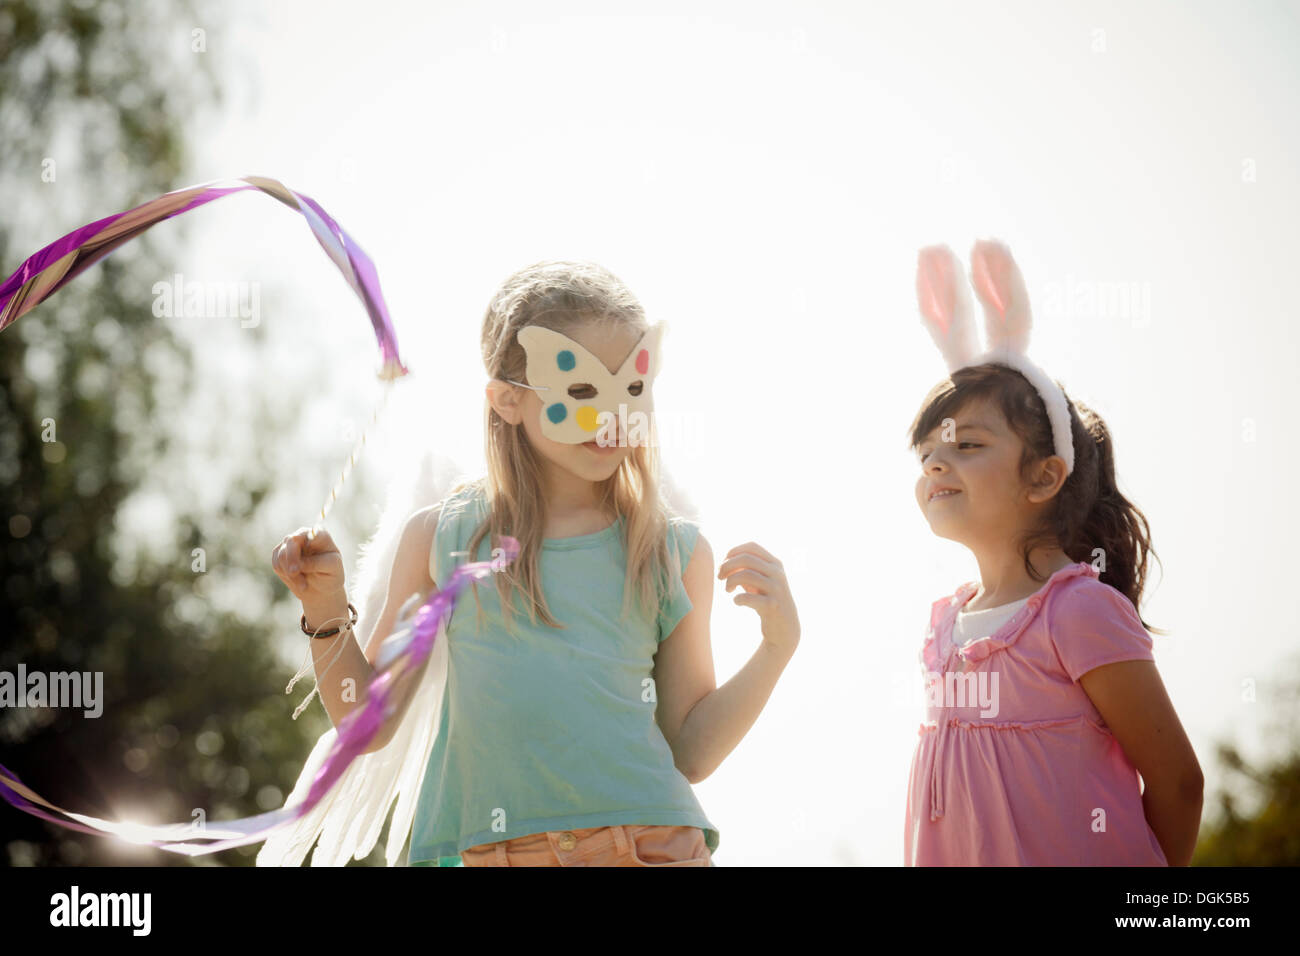 Children in costume play acting - Stock Image